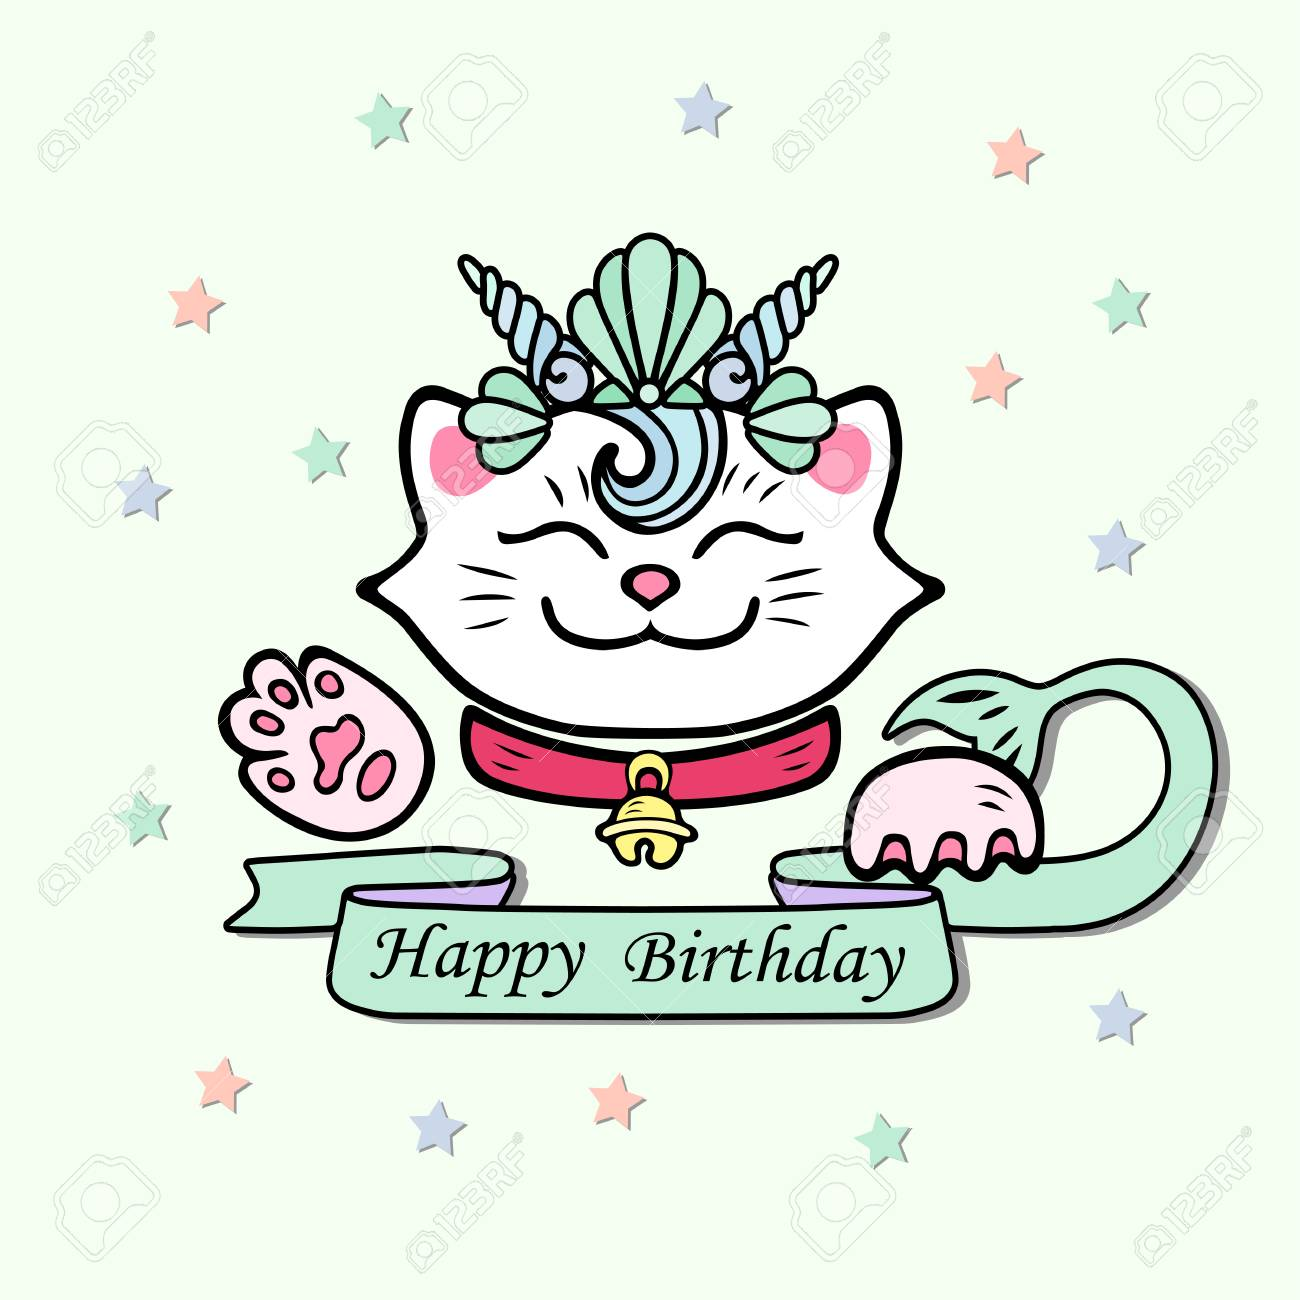 Cute Happy Birthday Card With Cat Marimaid Sea Shell Crown Vector Illustration For Party